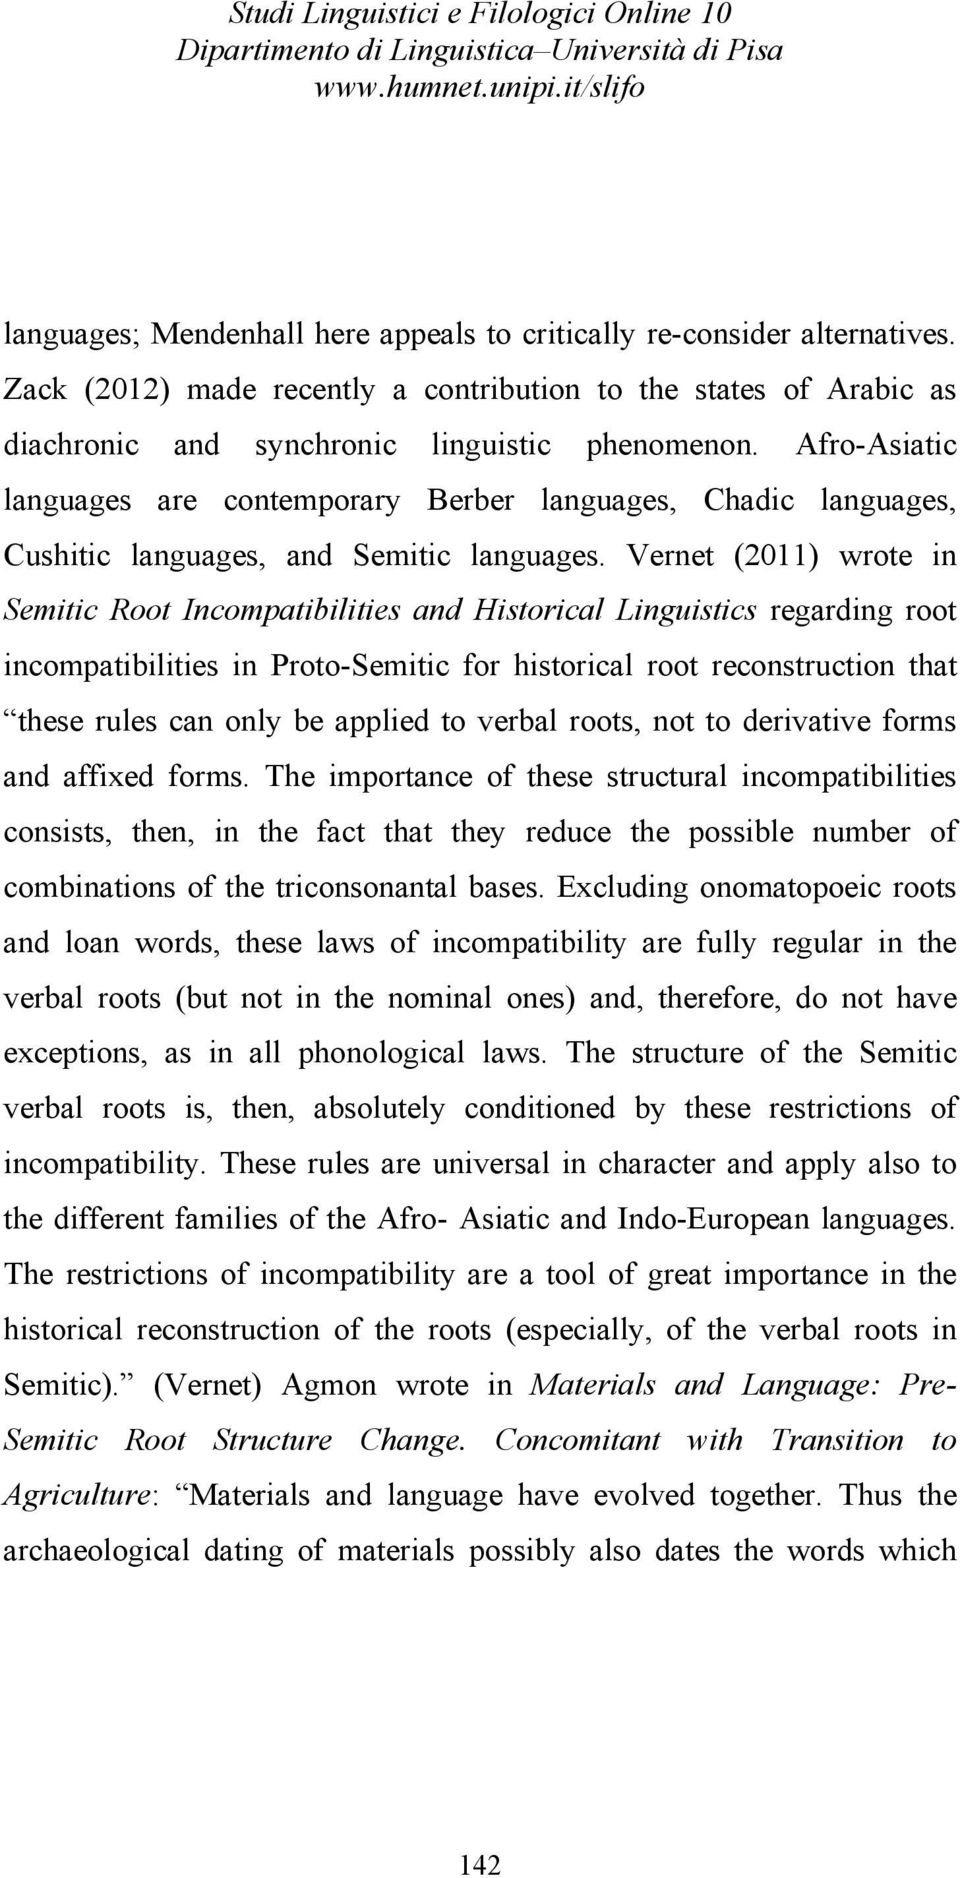 Vernet (2011) wrote in Semitic Root Incompatibilities and Historical Linguistics regarding root incompatibilities in Proto-Semitic for historical root reconstruction that these rules can only be